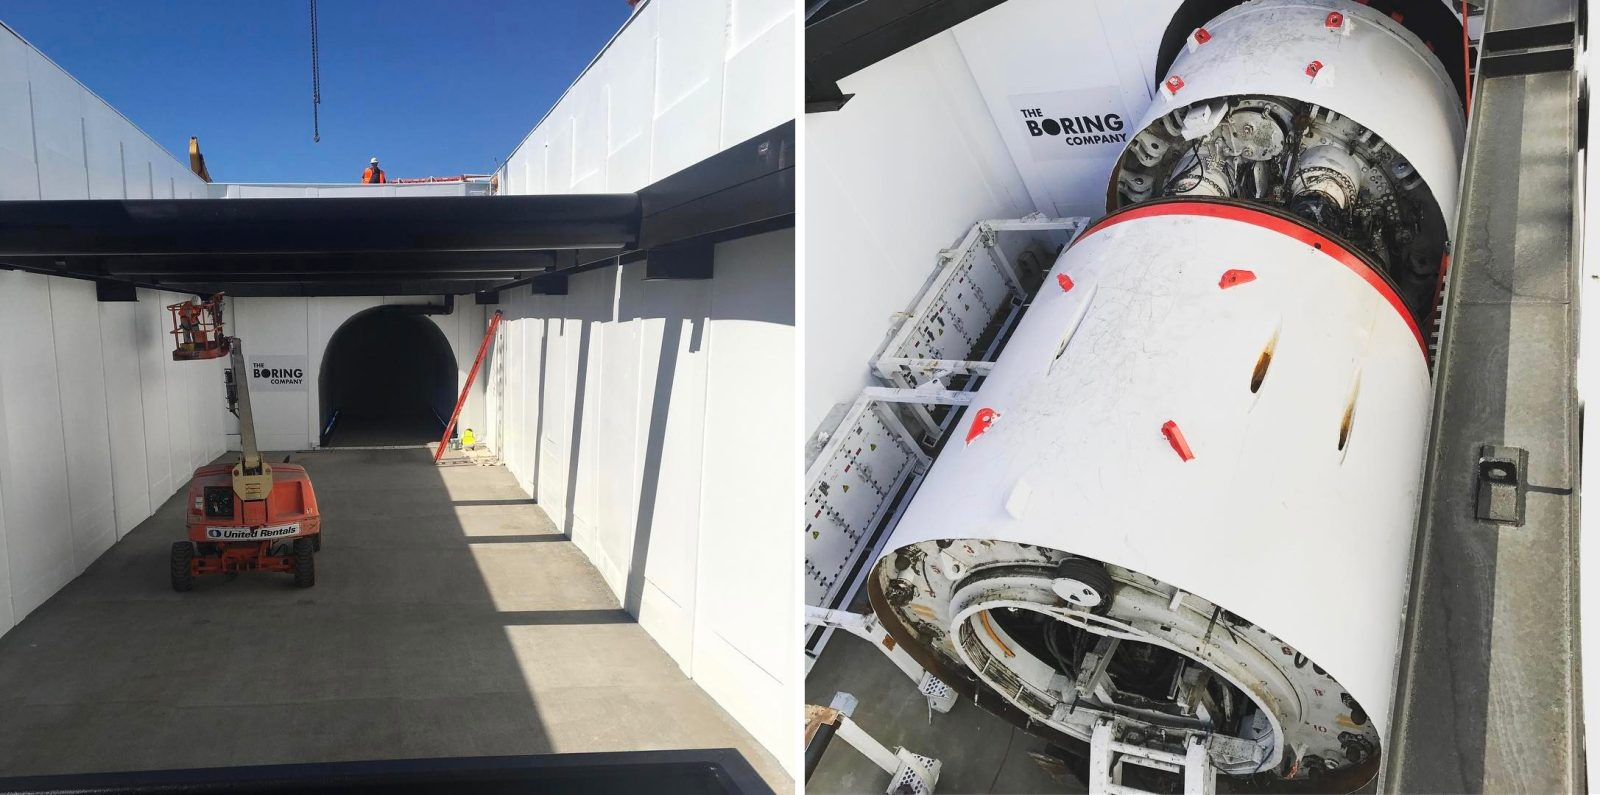 Elon Musk's Boring Company Chicago 'loop' project moves forward with some urgency